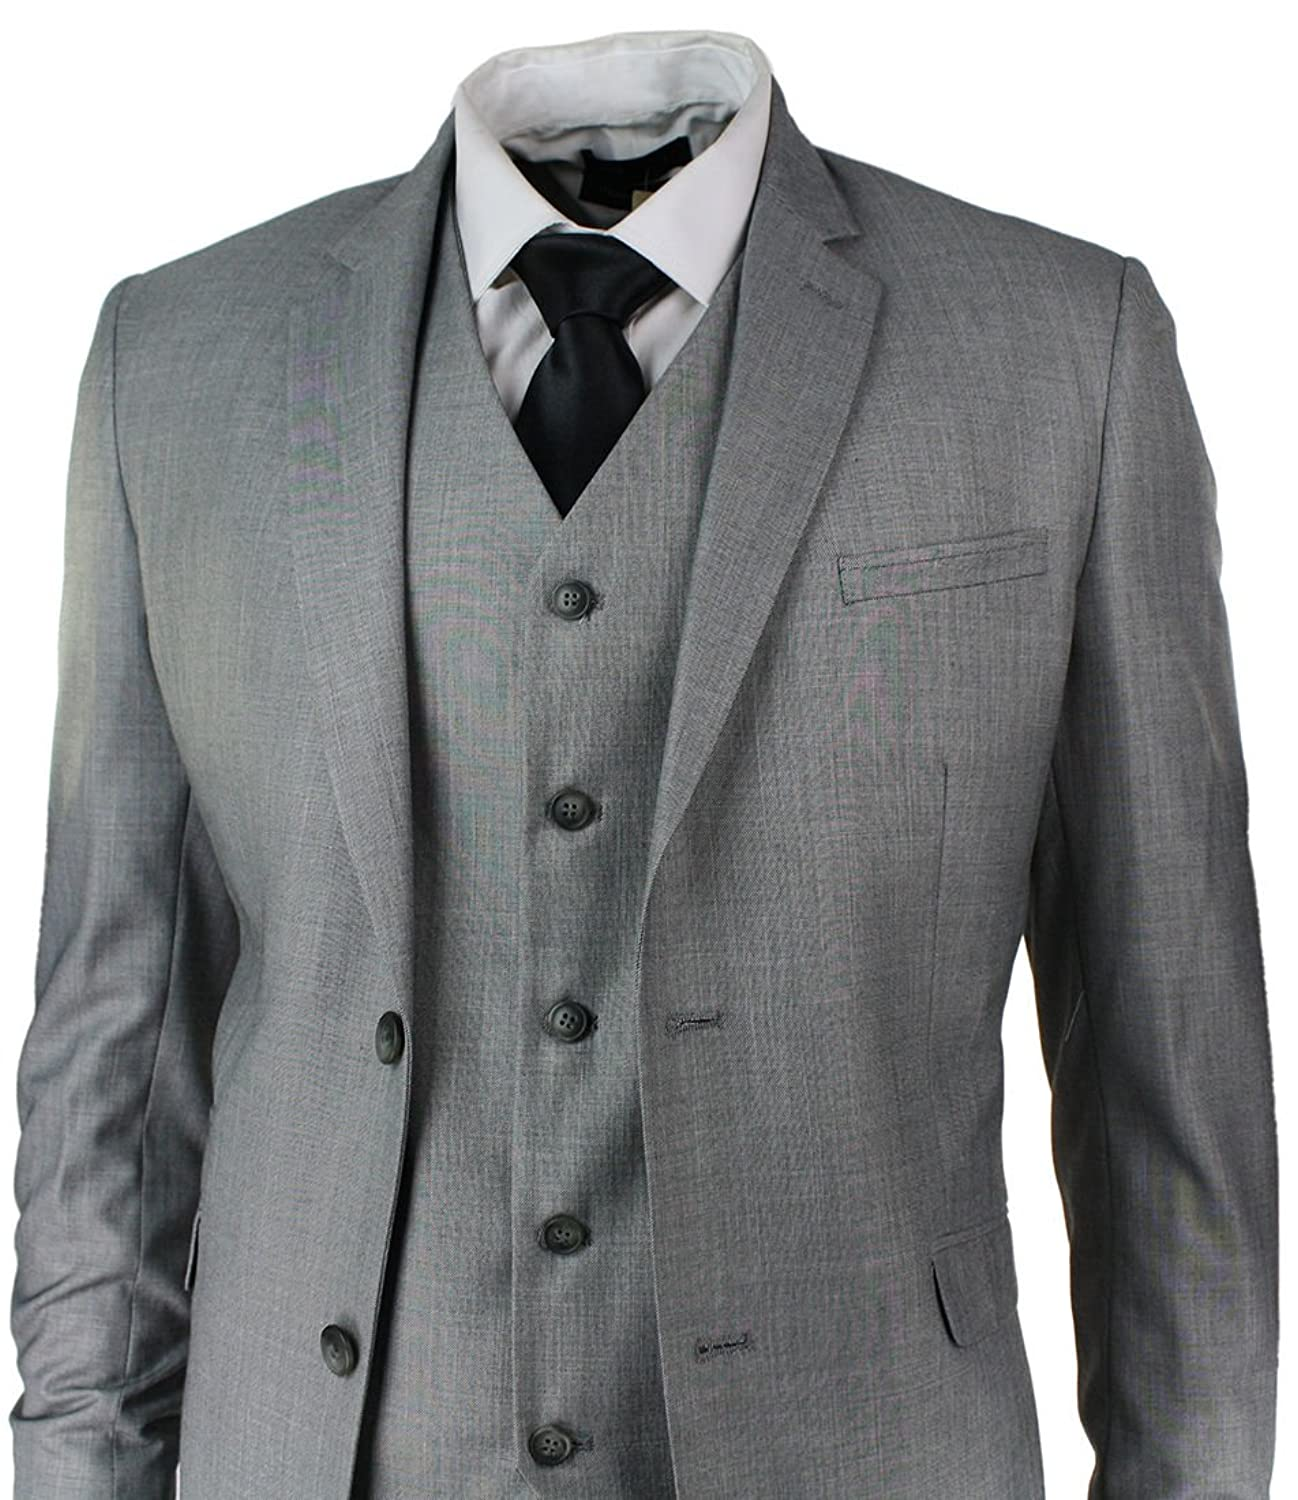 Mens Slim Fit Suit Light Grey Stitch Trim 3 Piece Work Office or ...